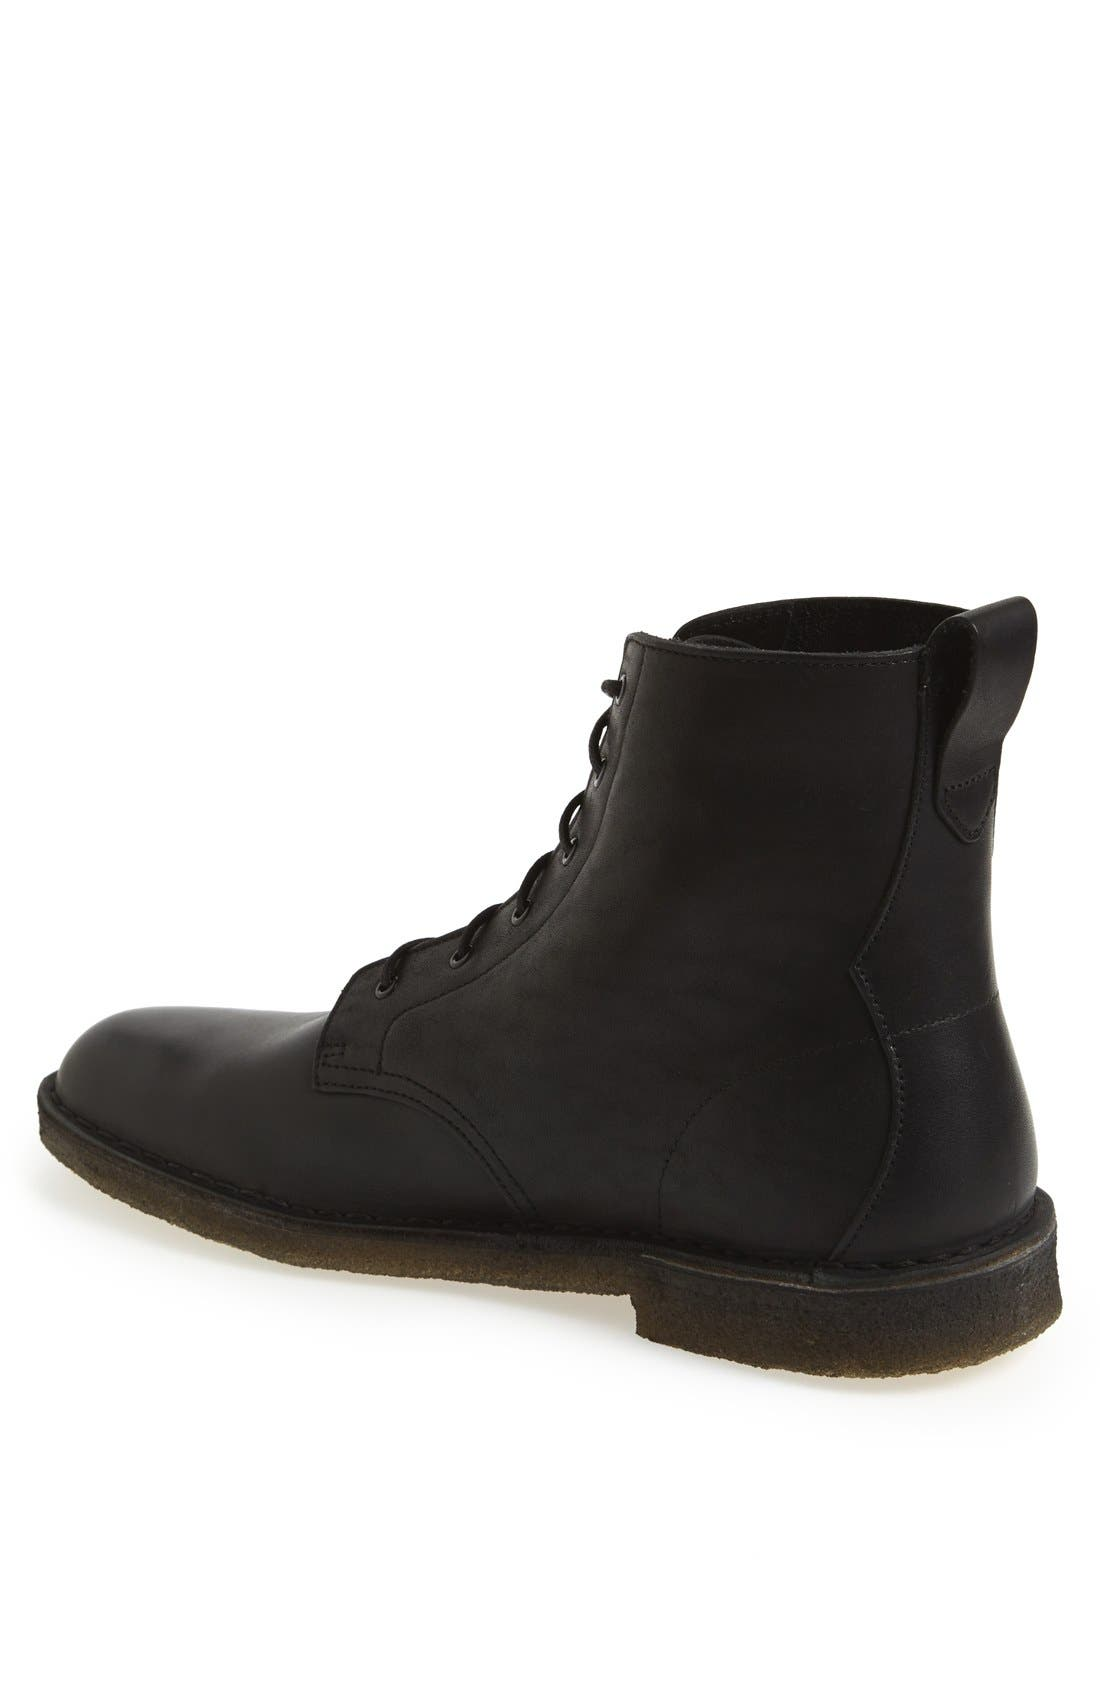 Alternate Image 2  - Clarks 'Desert Mali' Plain Boot (Men)